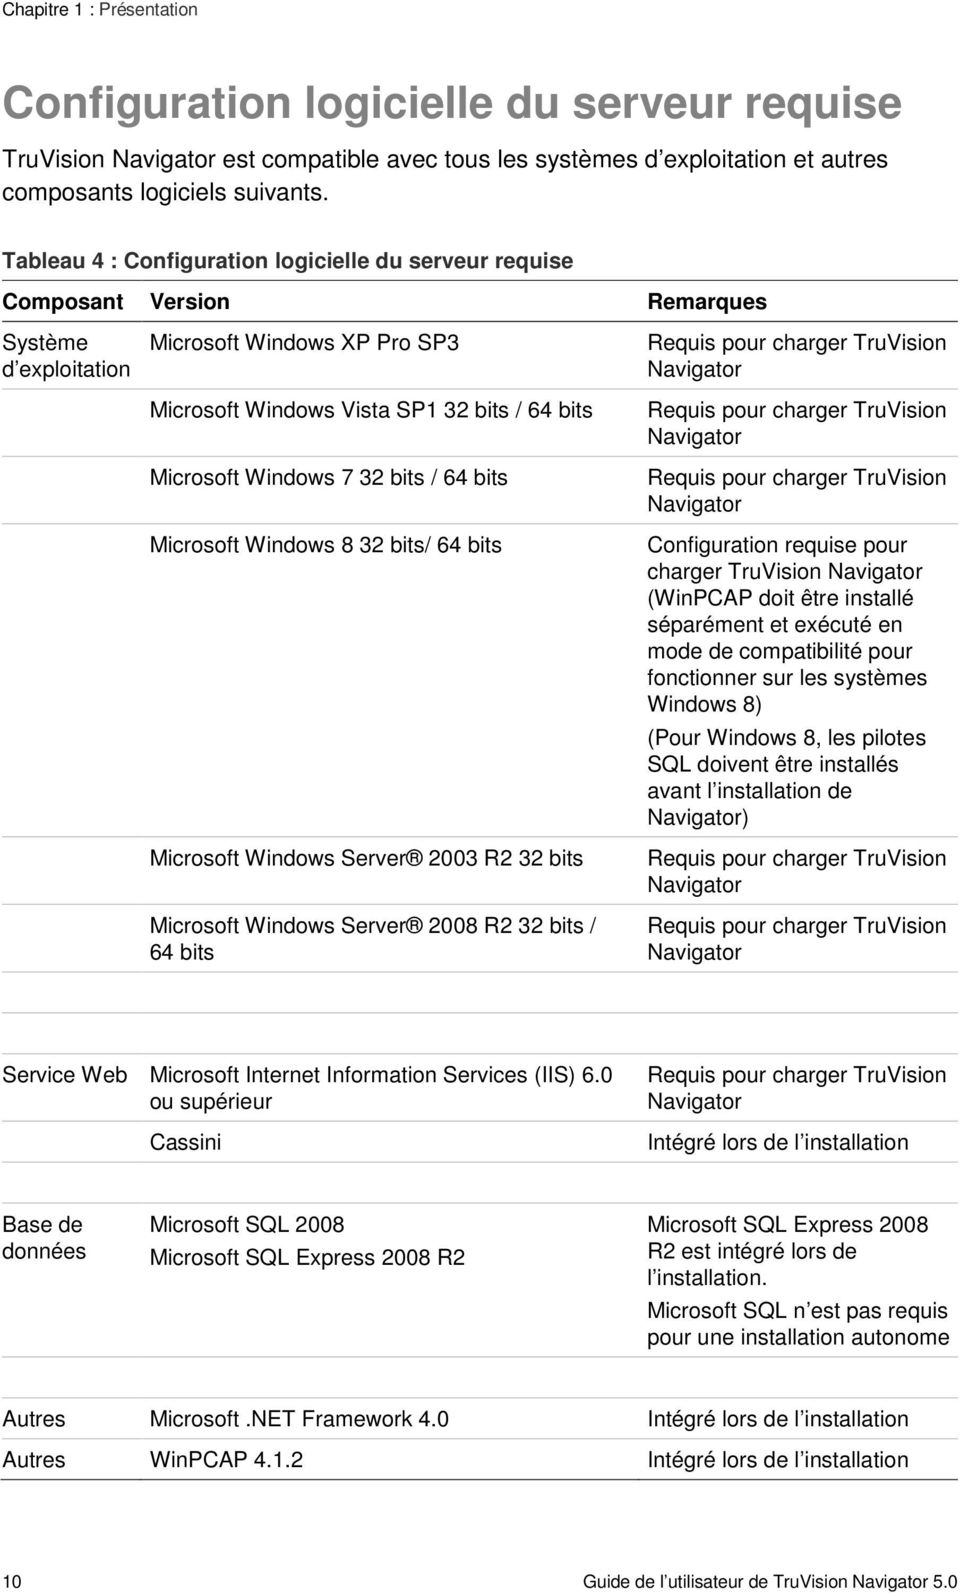 7 32 bits / 64 bits Microsoft Windows 8 32 bits/ 64 bits Microsoft Windows Server 2003 R2 32 bits Microsoft Windows Server 2008 R2 32 bits / 64 bits Requis pour charger TruVision Navigator Requis